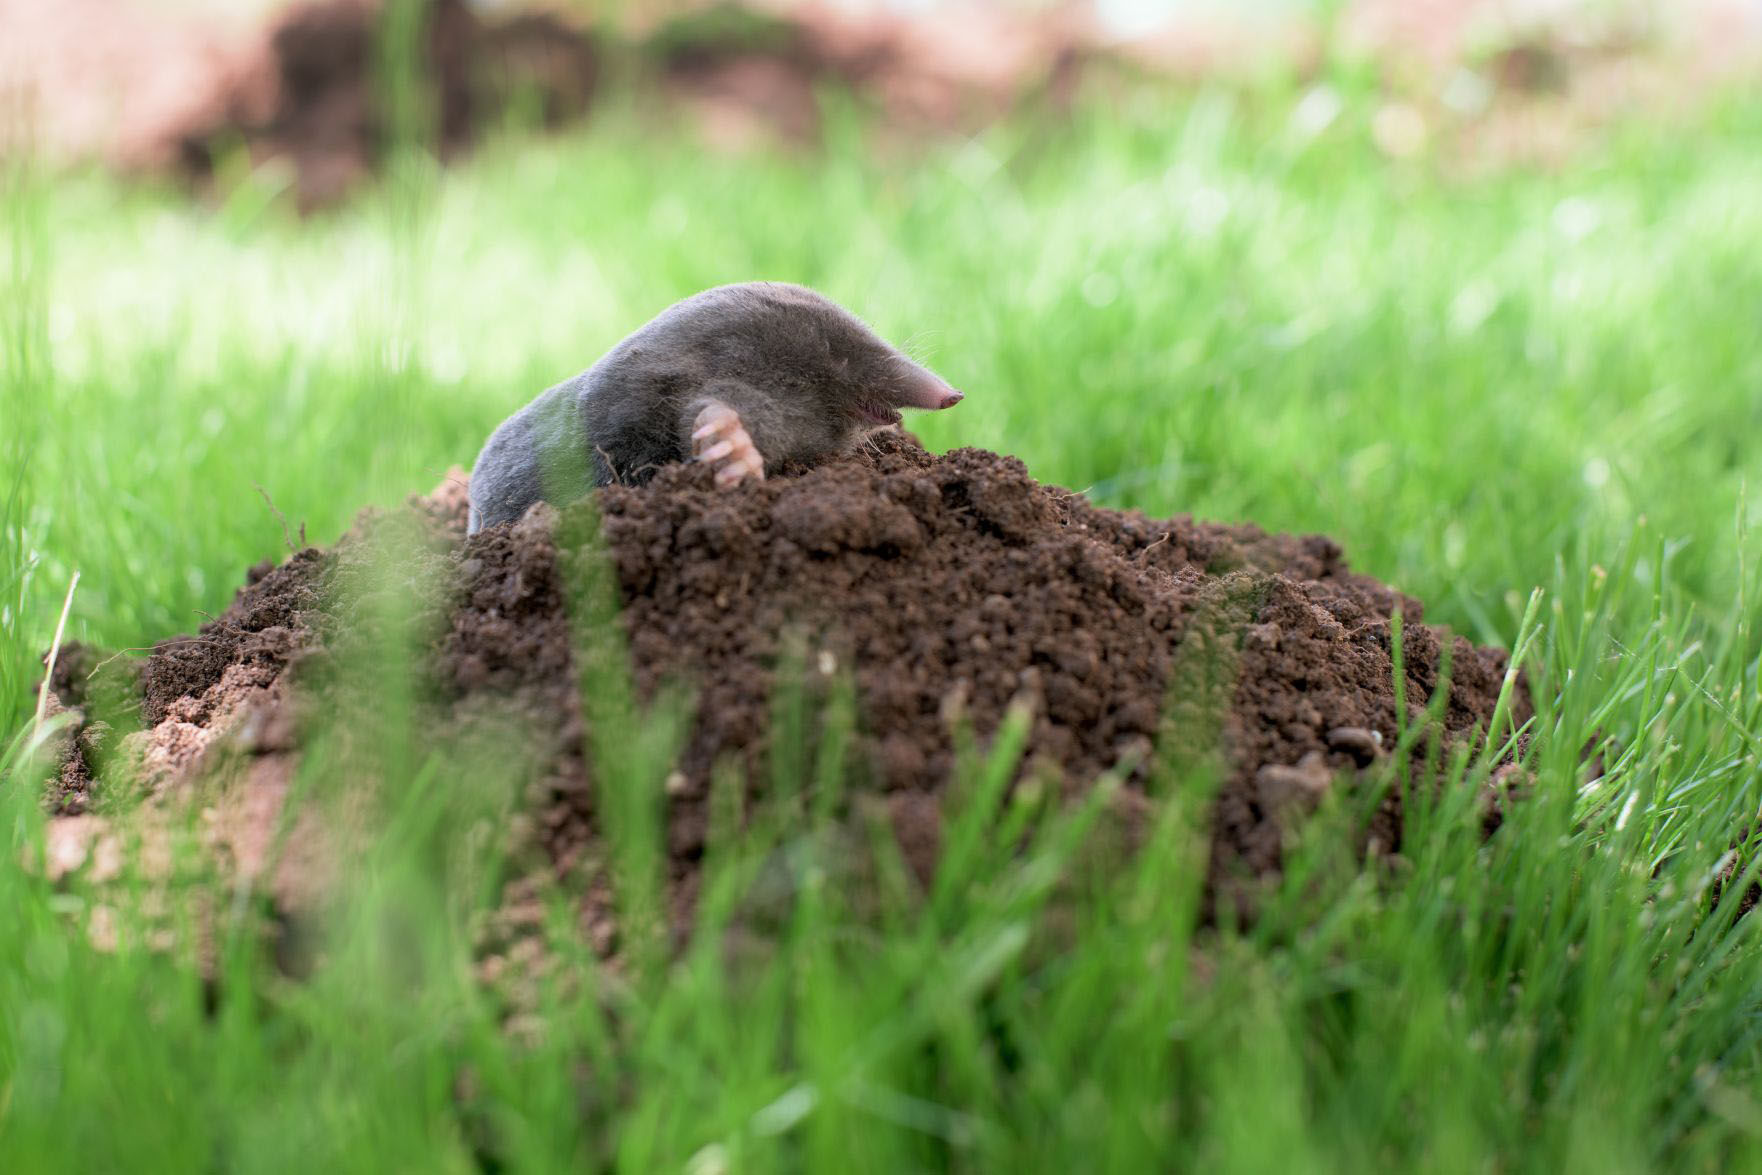 Darn vermin! Expert says try a three,pronged approach to rid